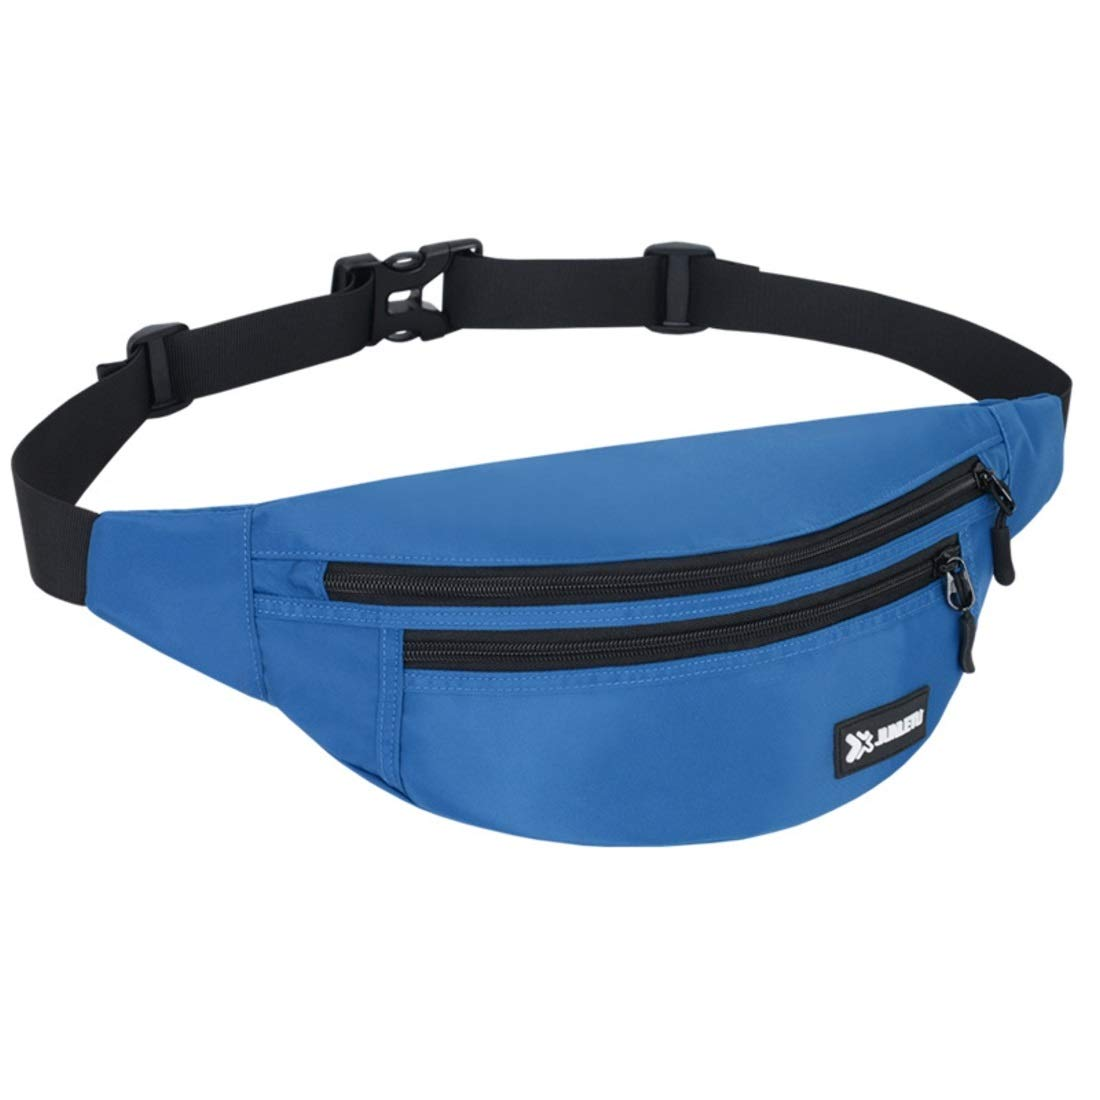 Color : Green XIAMEND Outdoor Waist Bag Multifunction Waterproof Running Belt Security Waist Pouch Jogging Belt Mobile Phone Pouch for Walking Holidays Hiking Cycling Running